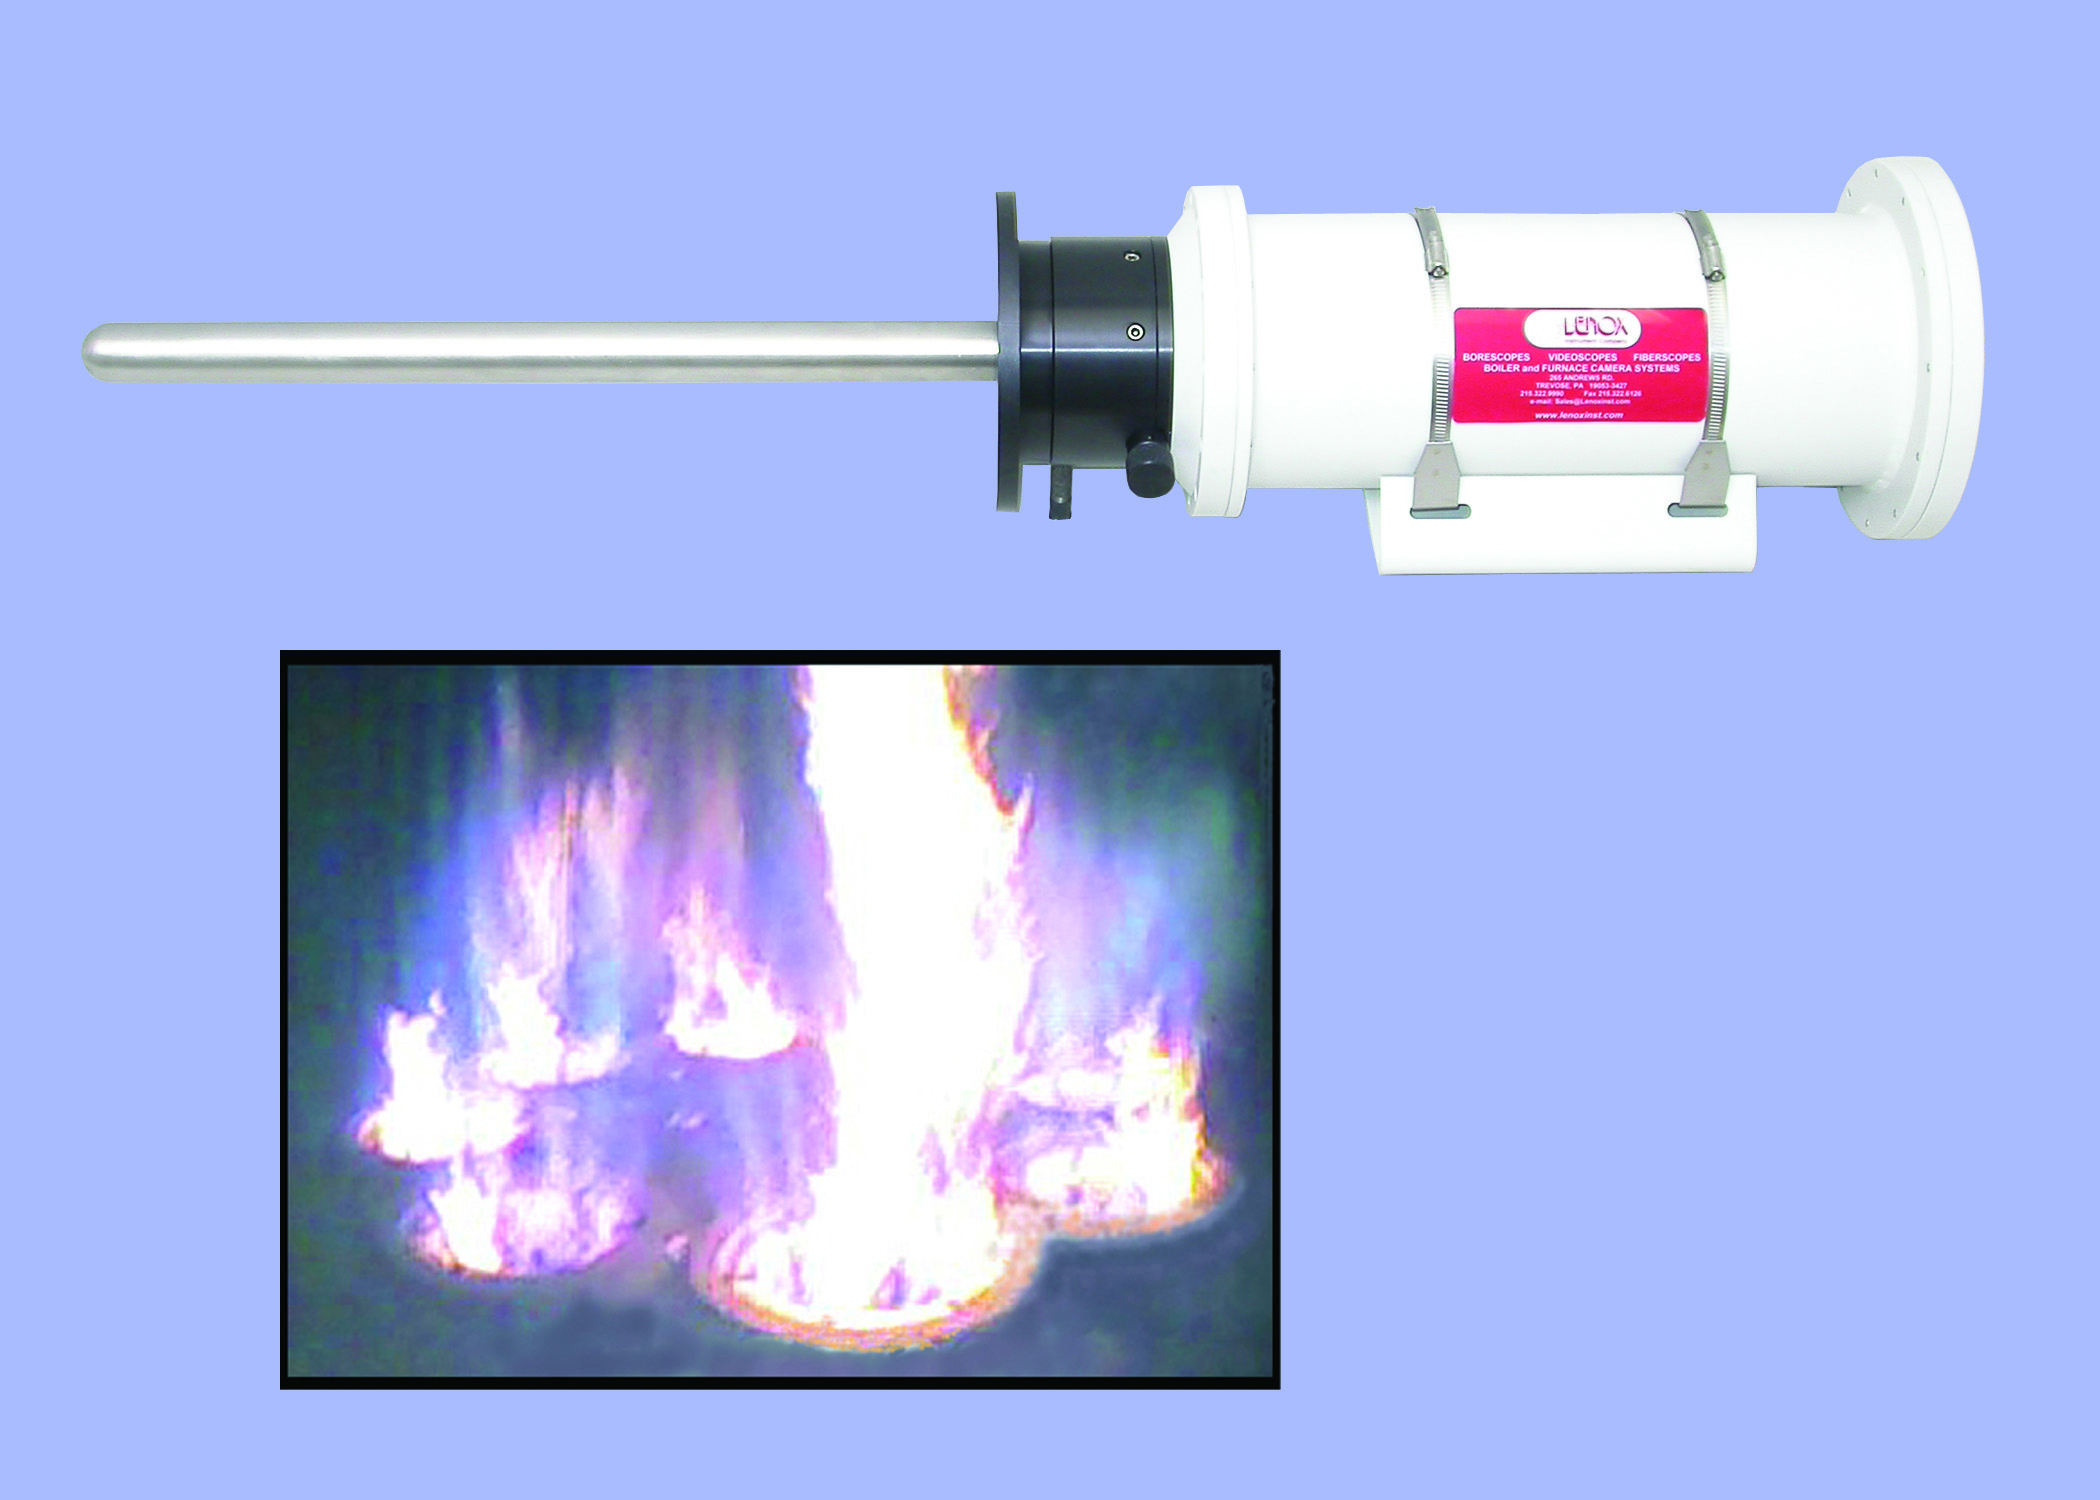 Fired Heater Camera System For Monitoring Burner